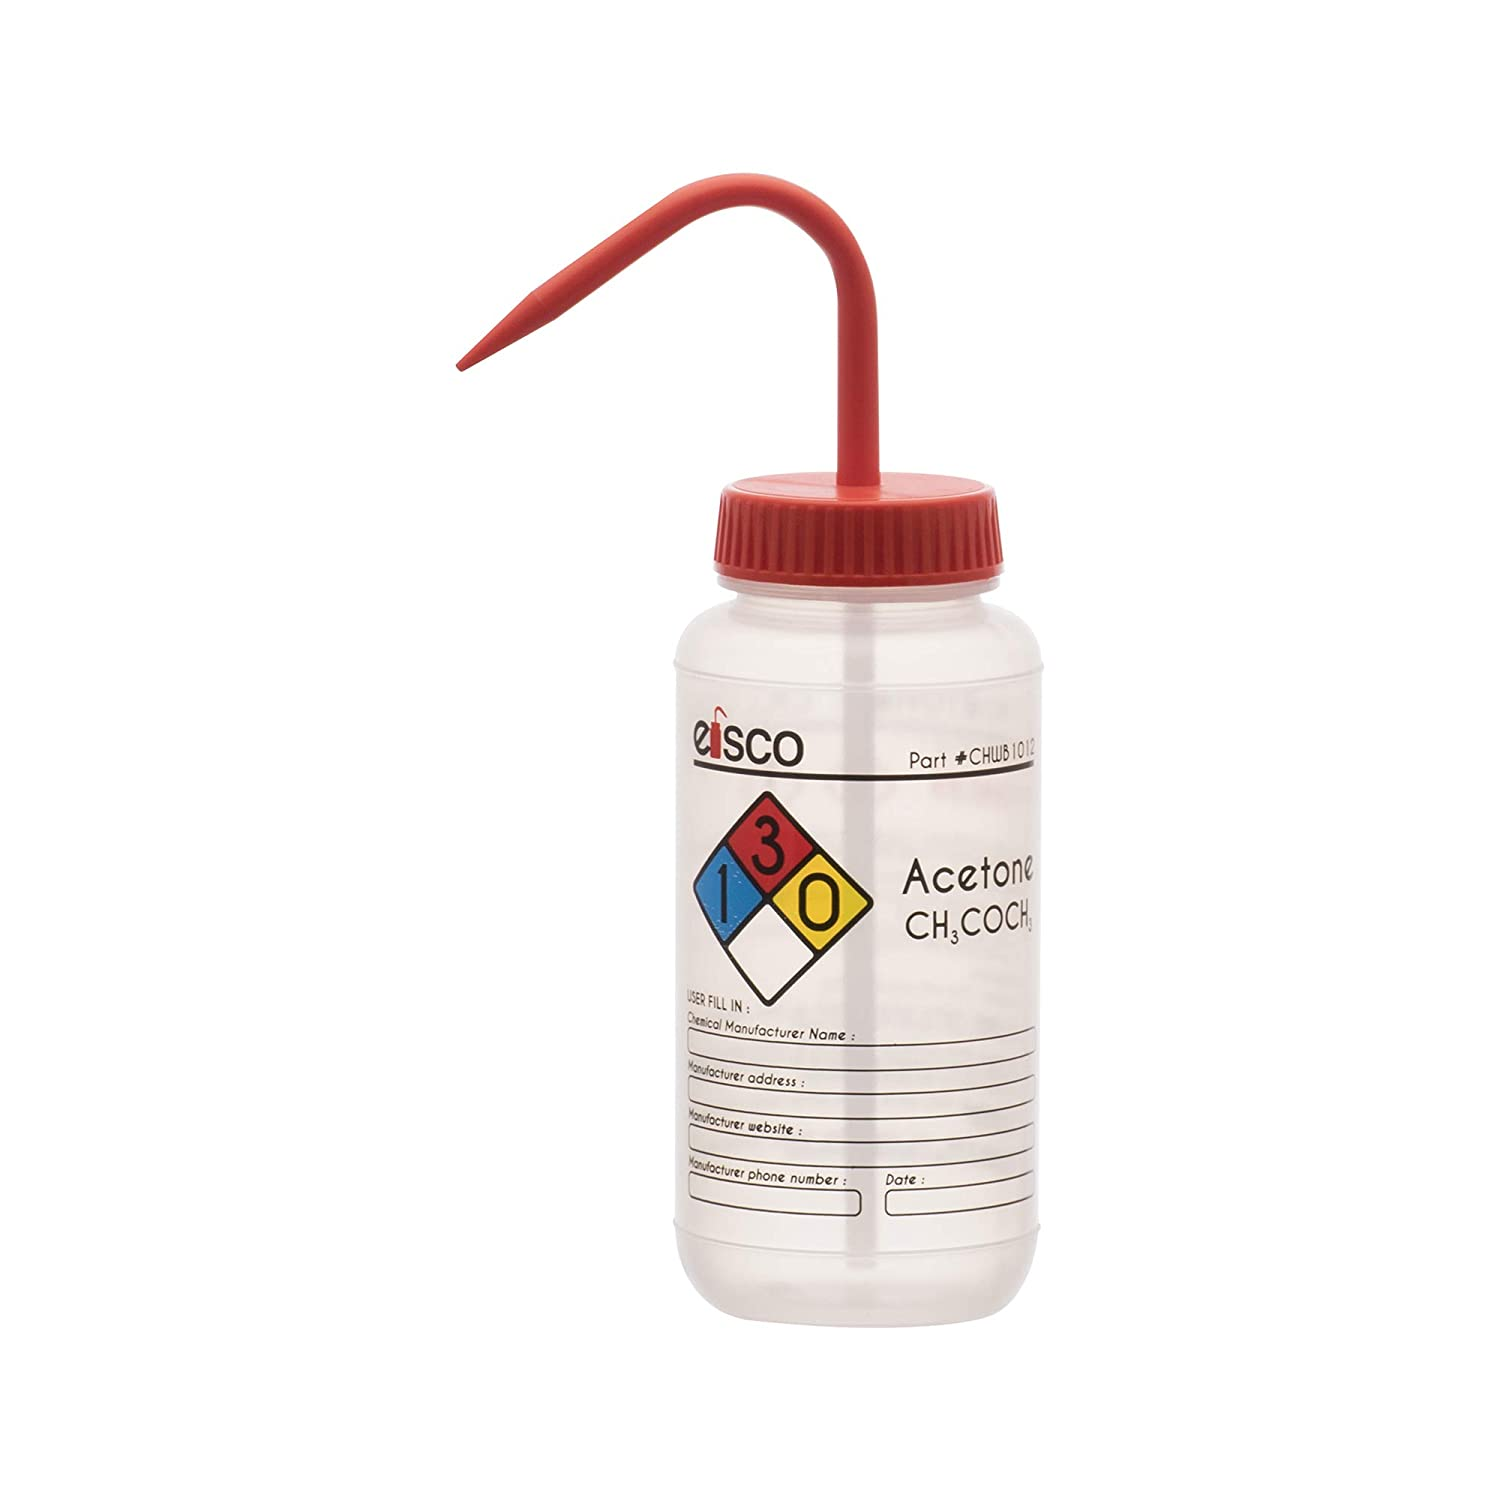 Wash Bottle Topics on TV for Acetone 500ml - Coded with latest Labeled Chemic Color